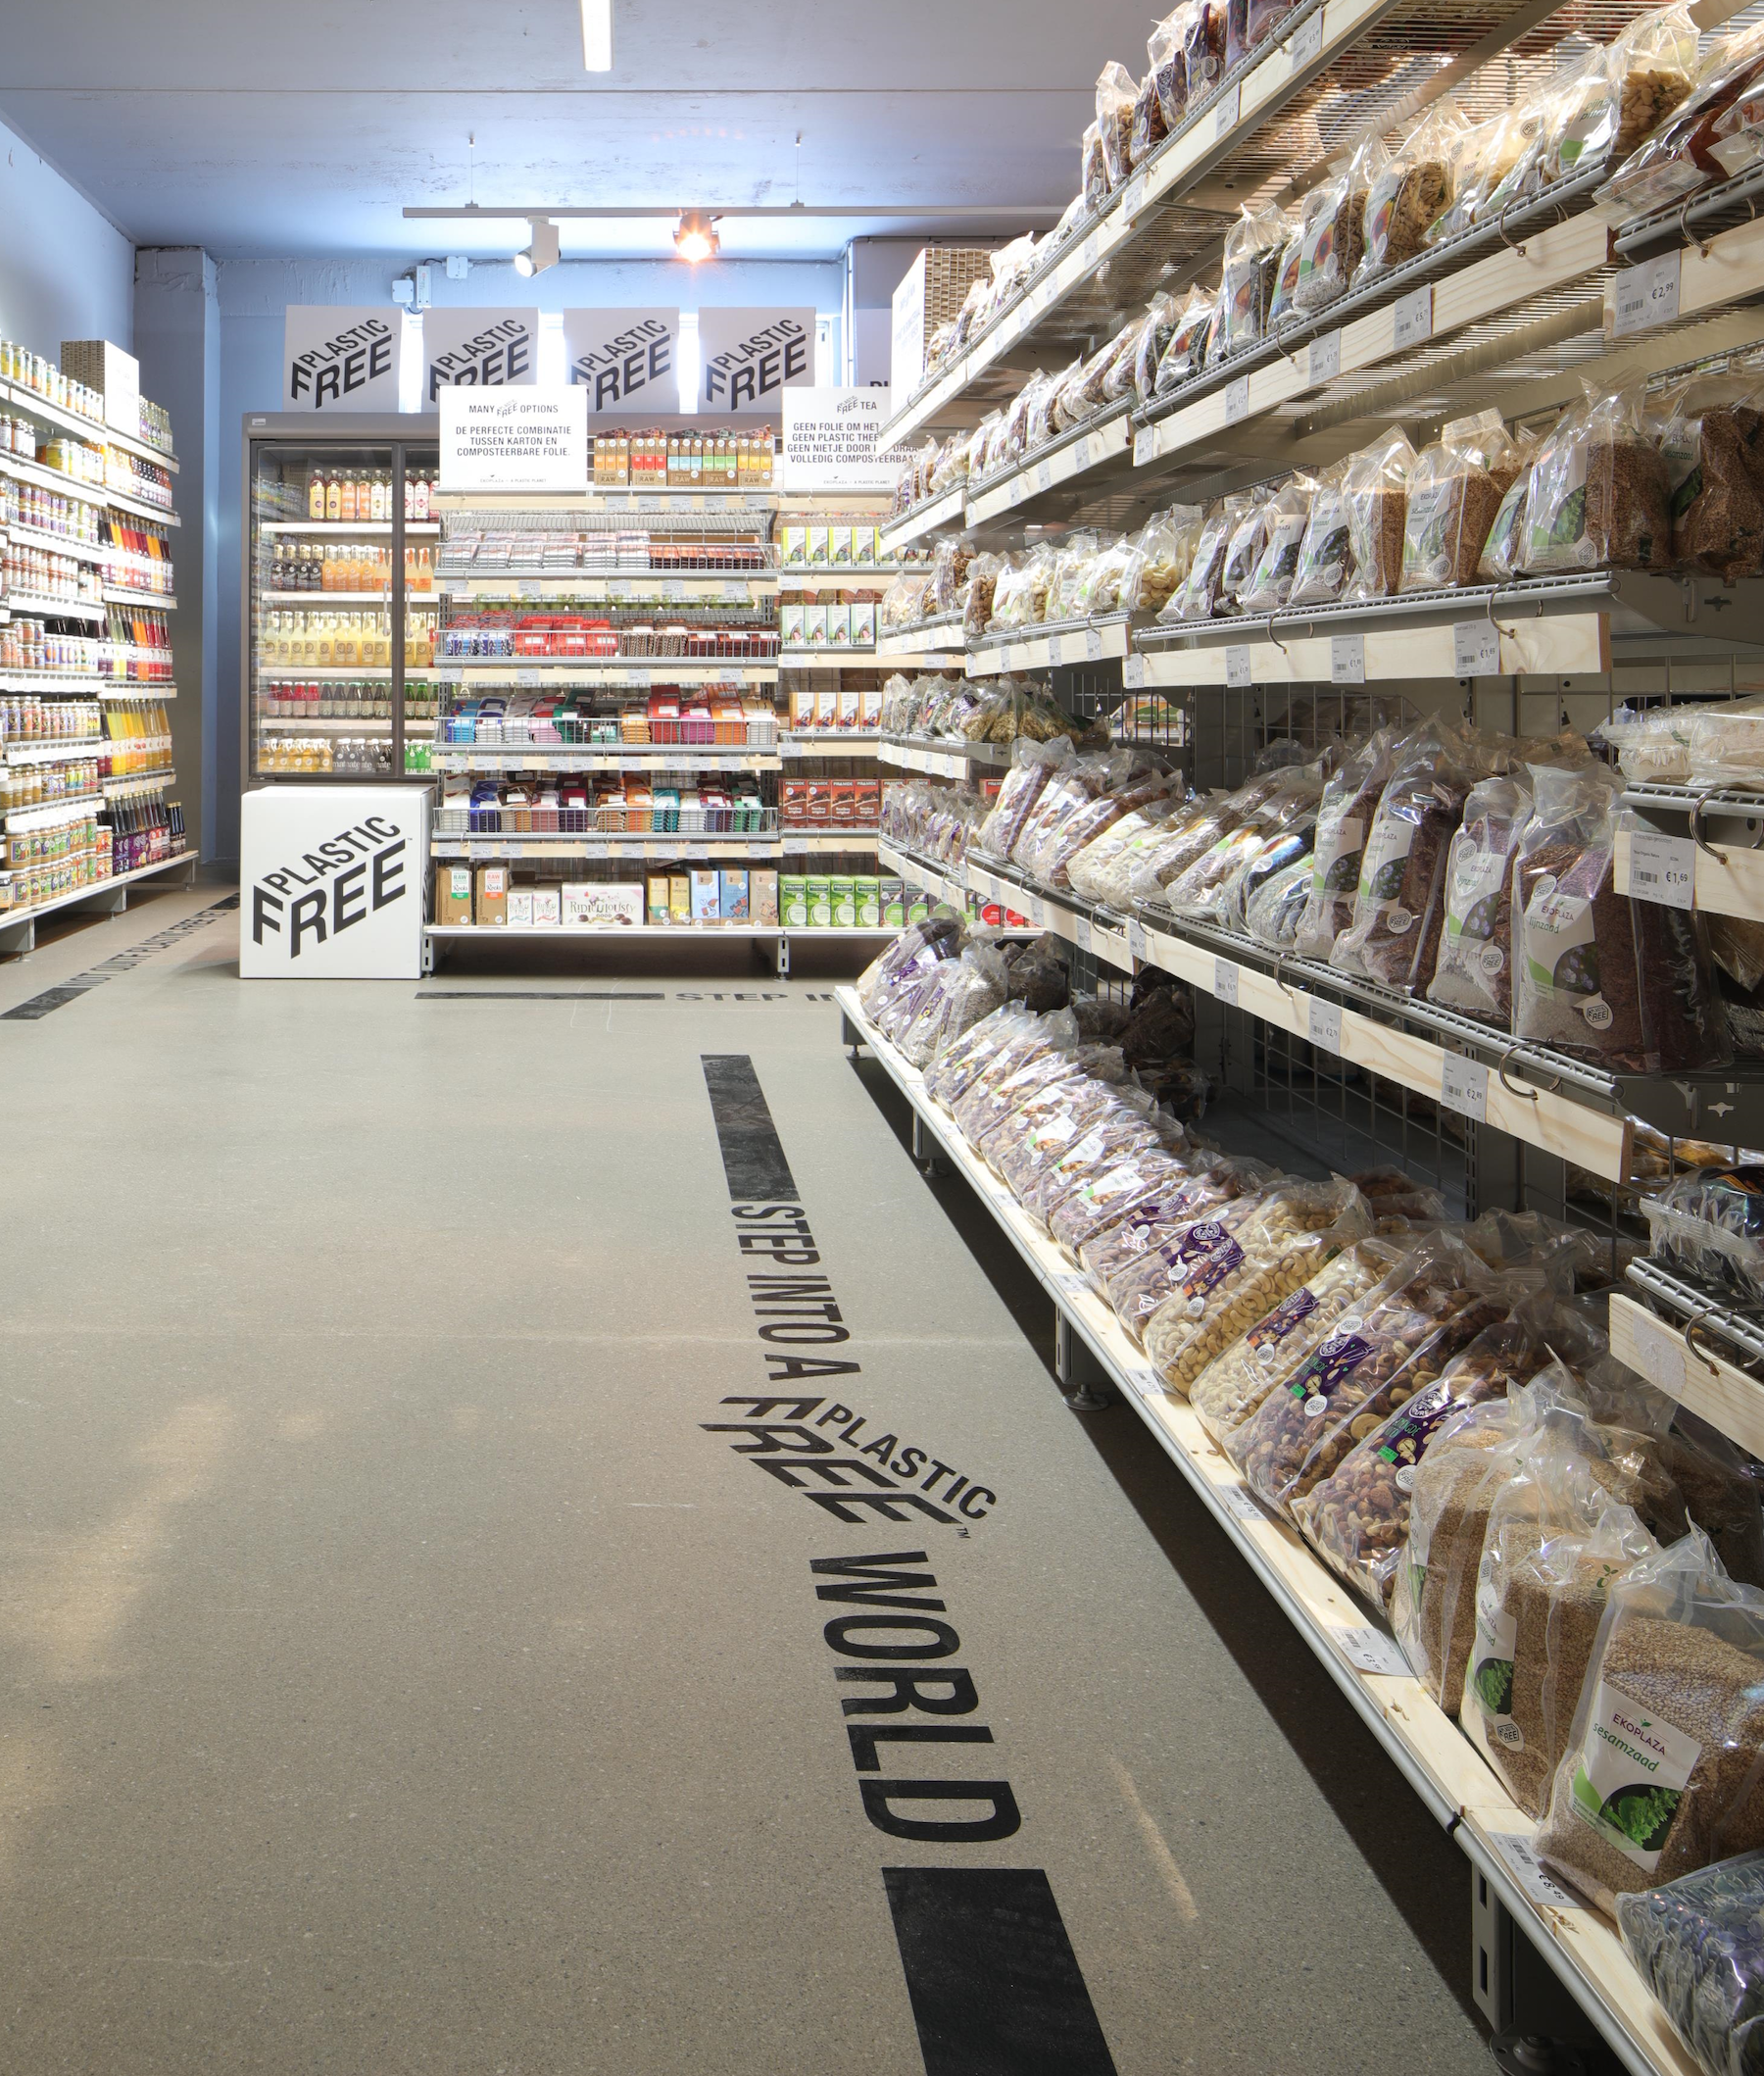 World's First Plastic-Free Aisle Arrives In Amsterdam Supermarket